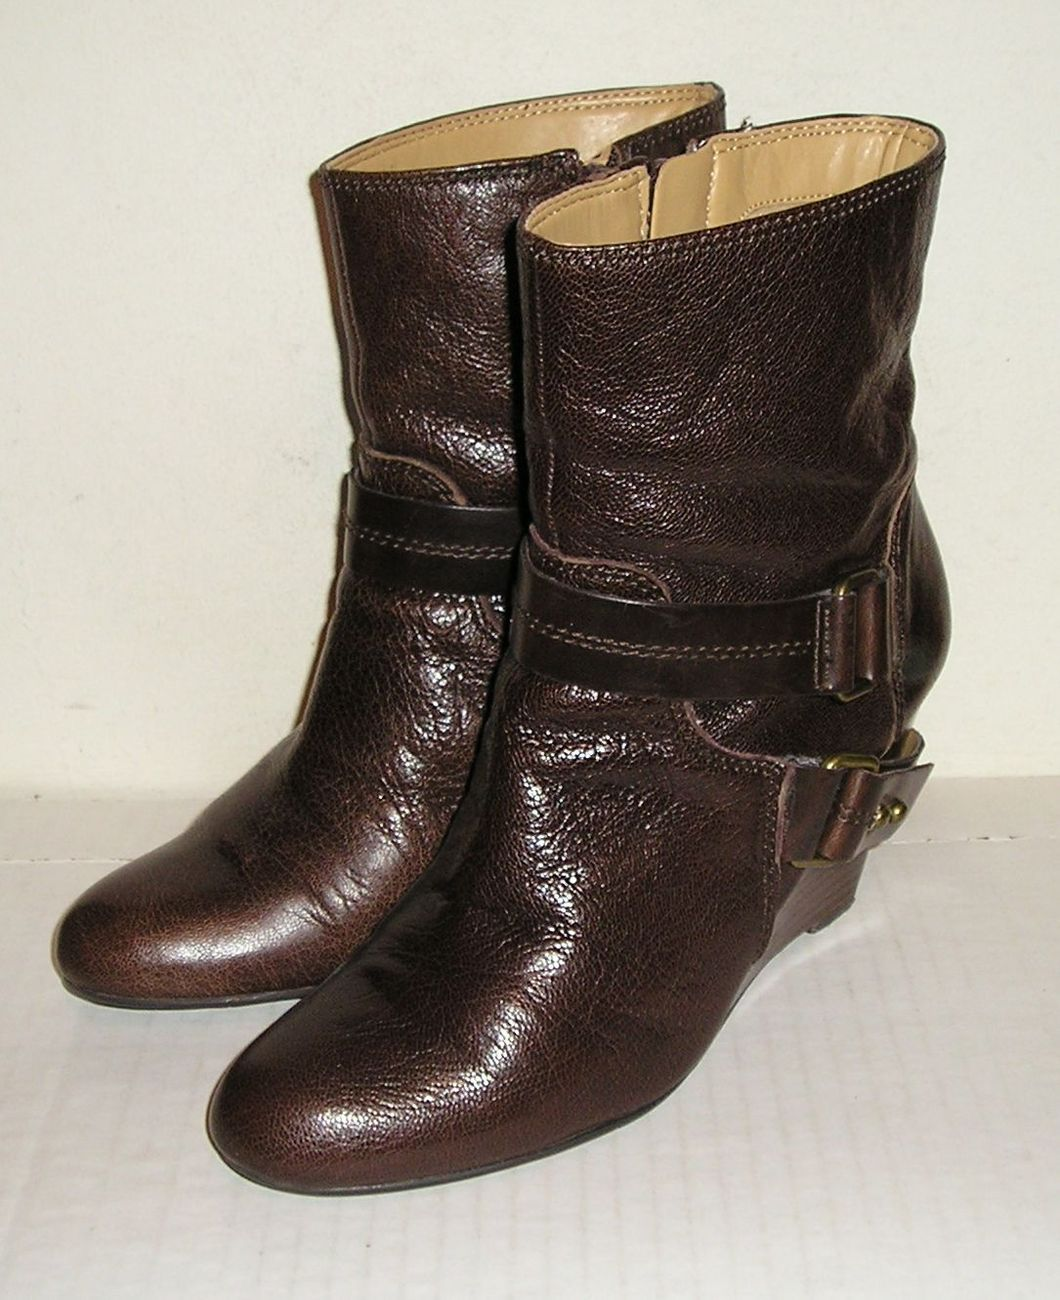 NINE WEST ONTHEGCO Women's Brown Leather Wedge Buckle Fashion Boots Shoes 8 M